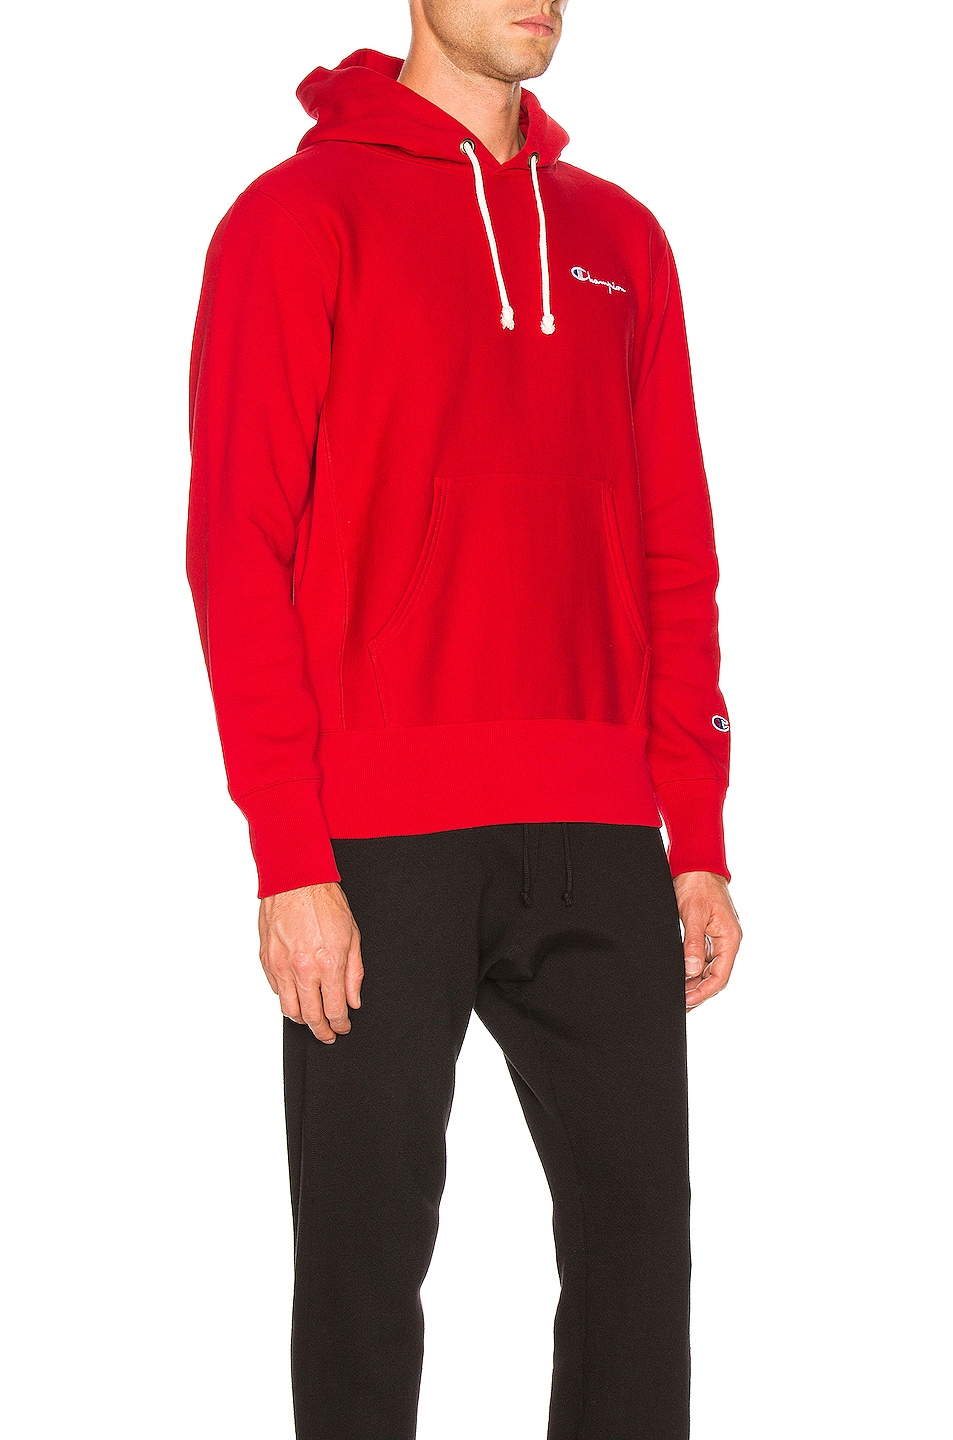 Image 2 of Champion Reverse Weave Champion Hooded Sweatshirt in Red